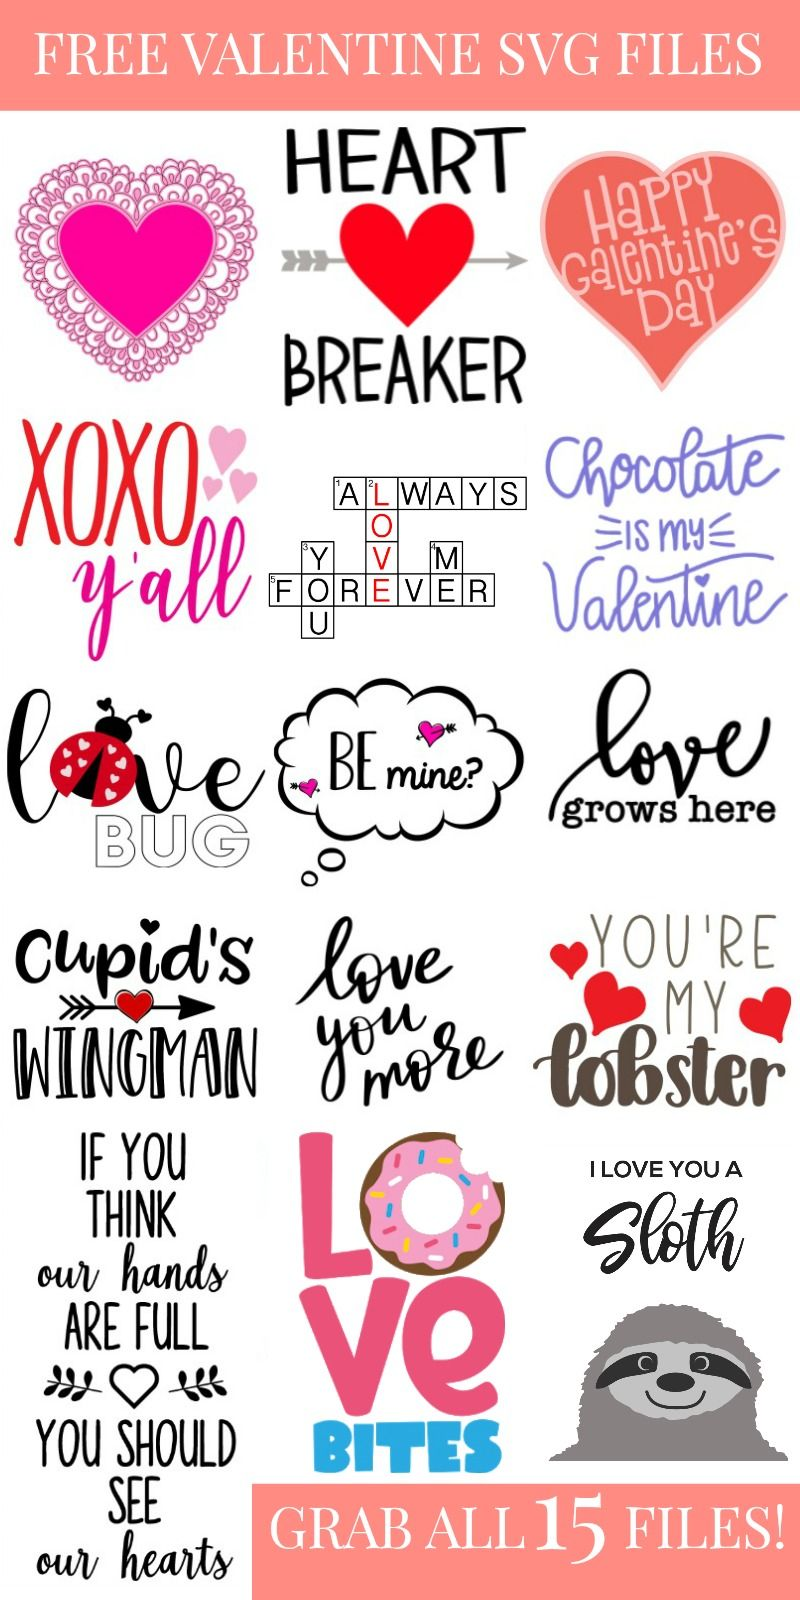 free valentine svg files #1033, Download drawings